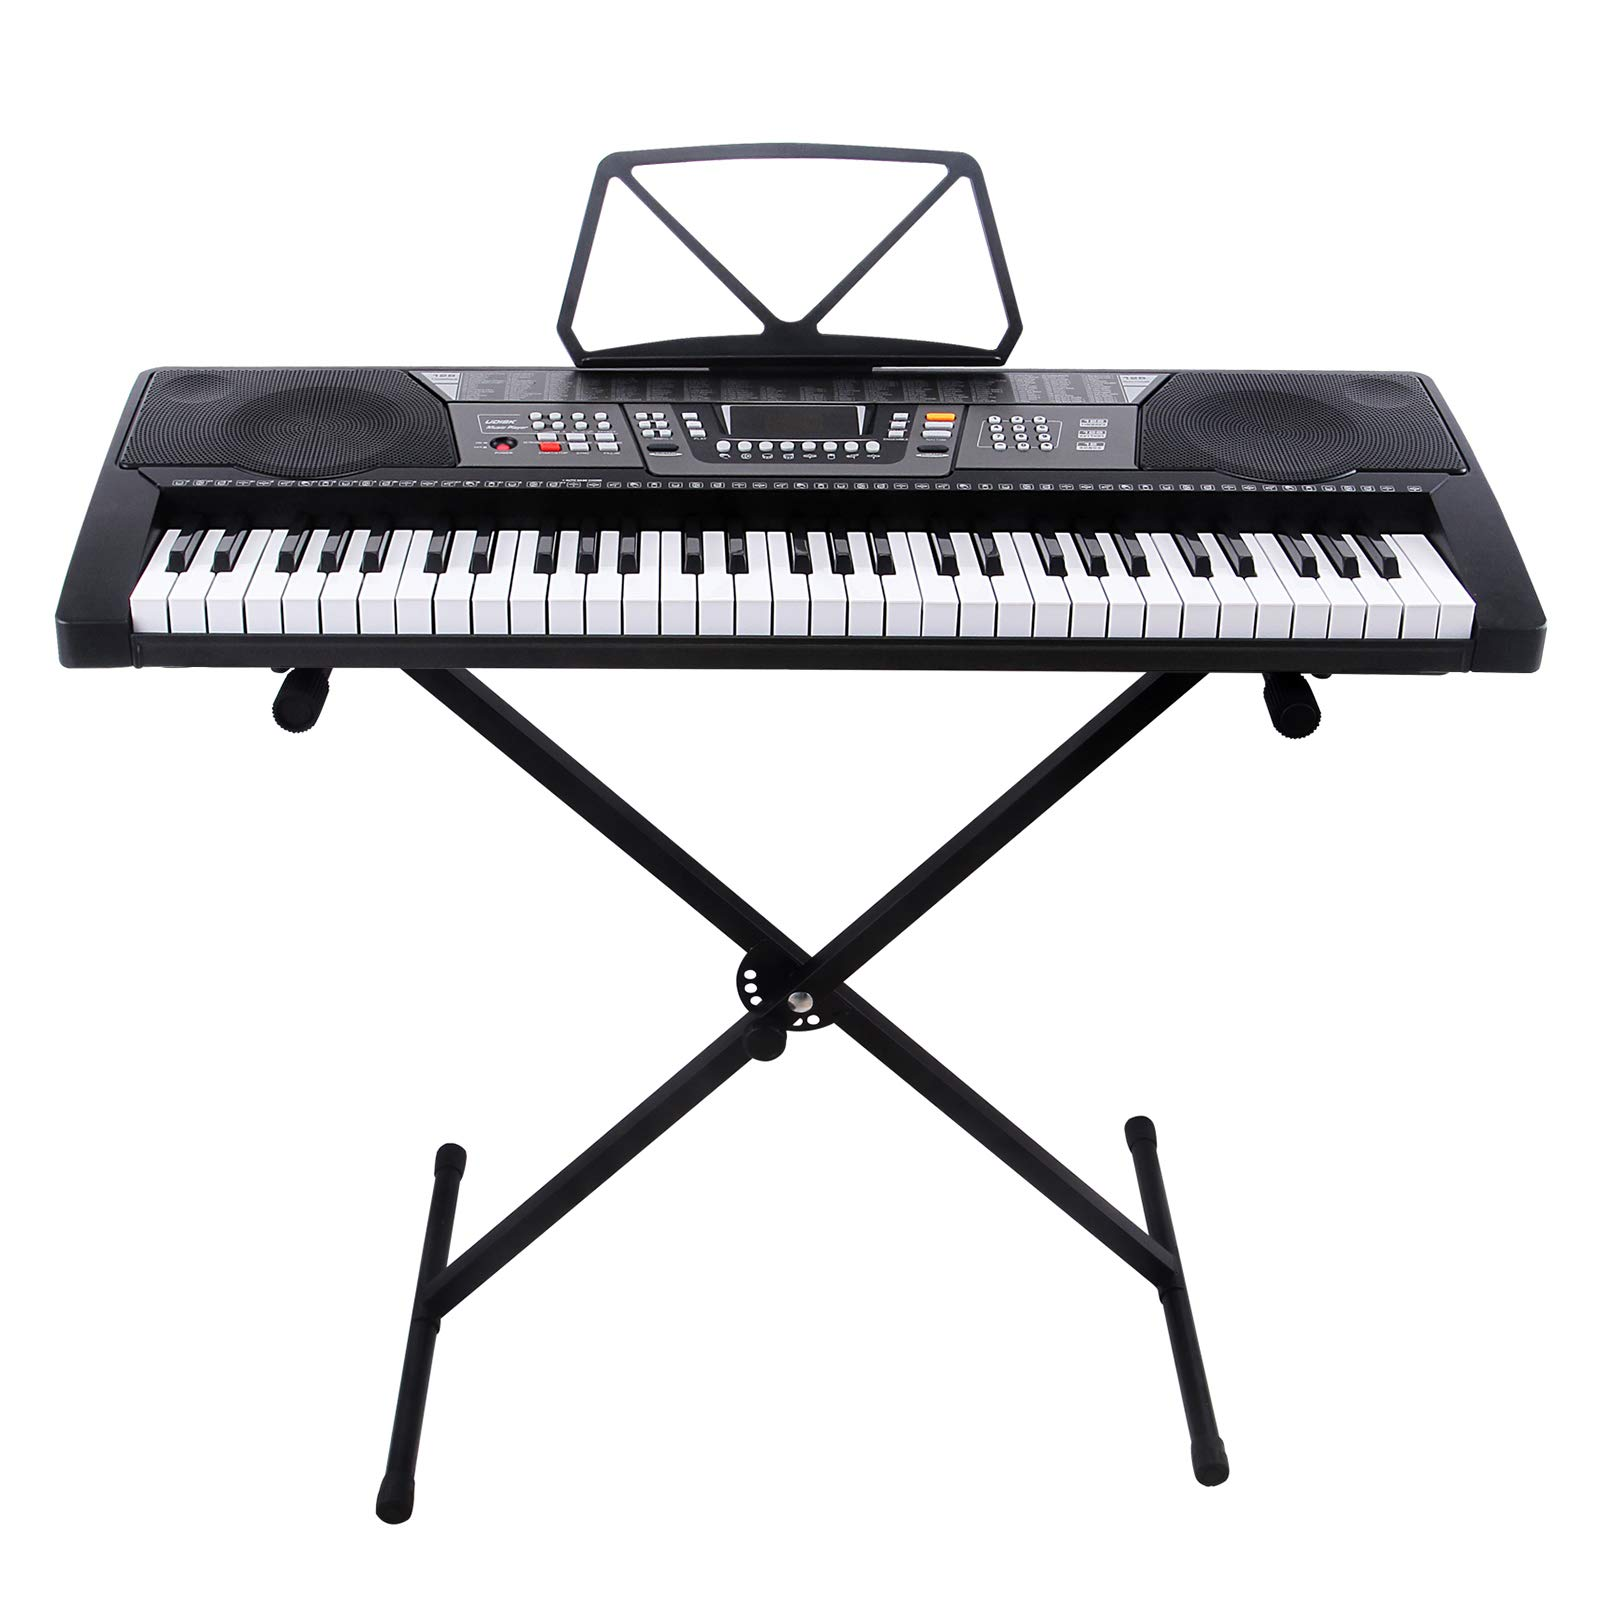 LAGRIMA 61 Key Portable Electric Piano Keyboard, Include LED Display, USB/Headphones/MP3 Input, Music Stand, X Stand, Power Supply, Suit for Kids(Over 8 Years Old) Teen Adult Beginner by LAGRIMA